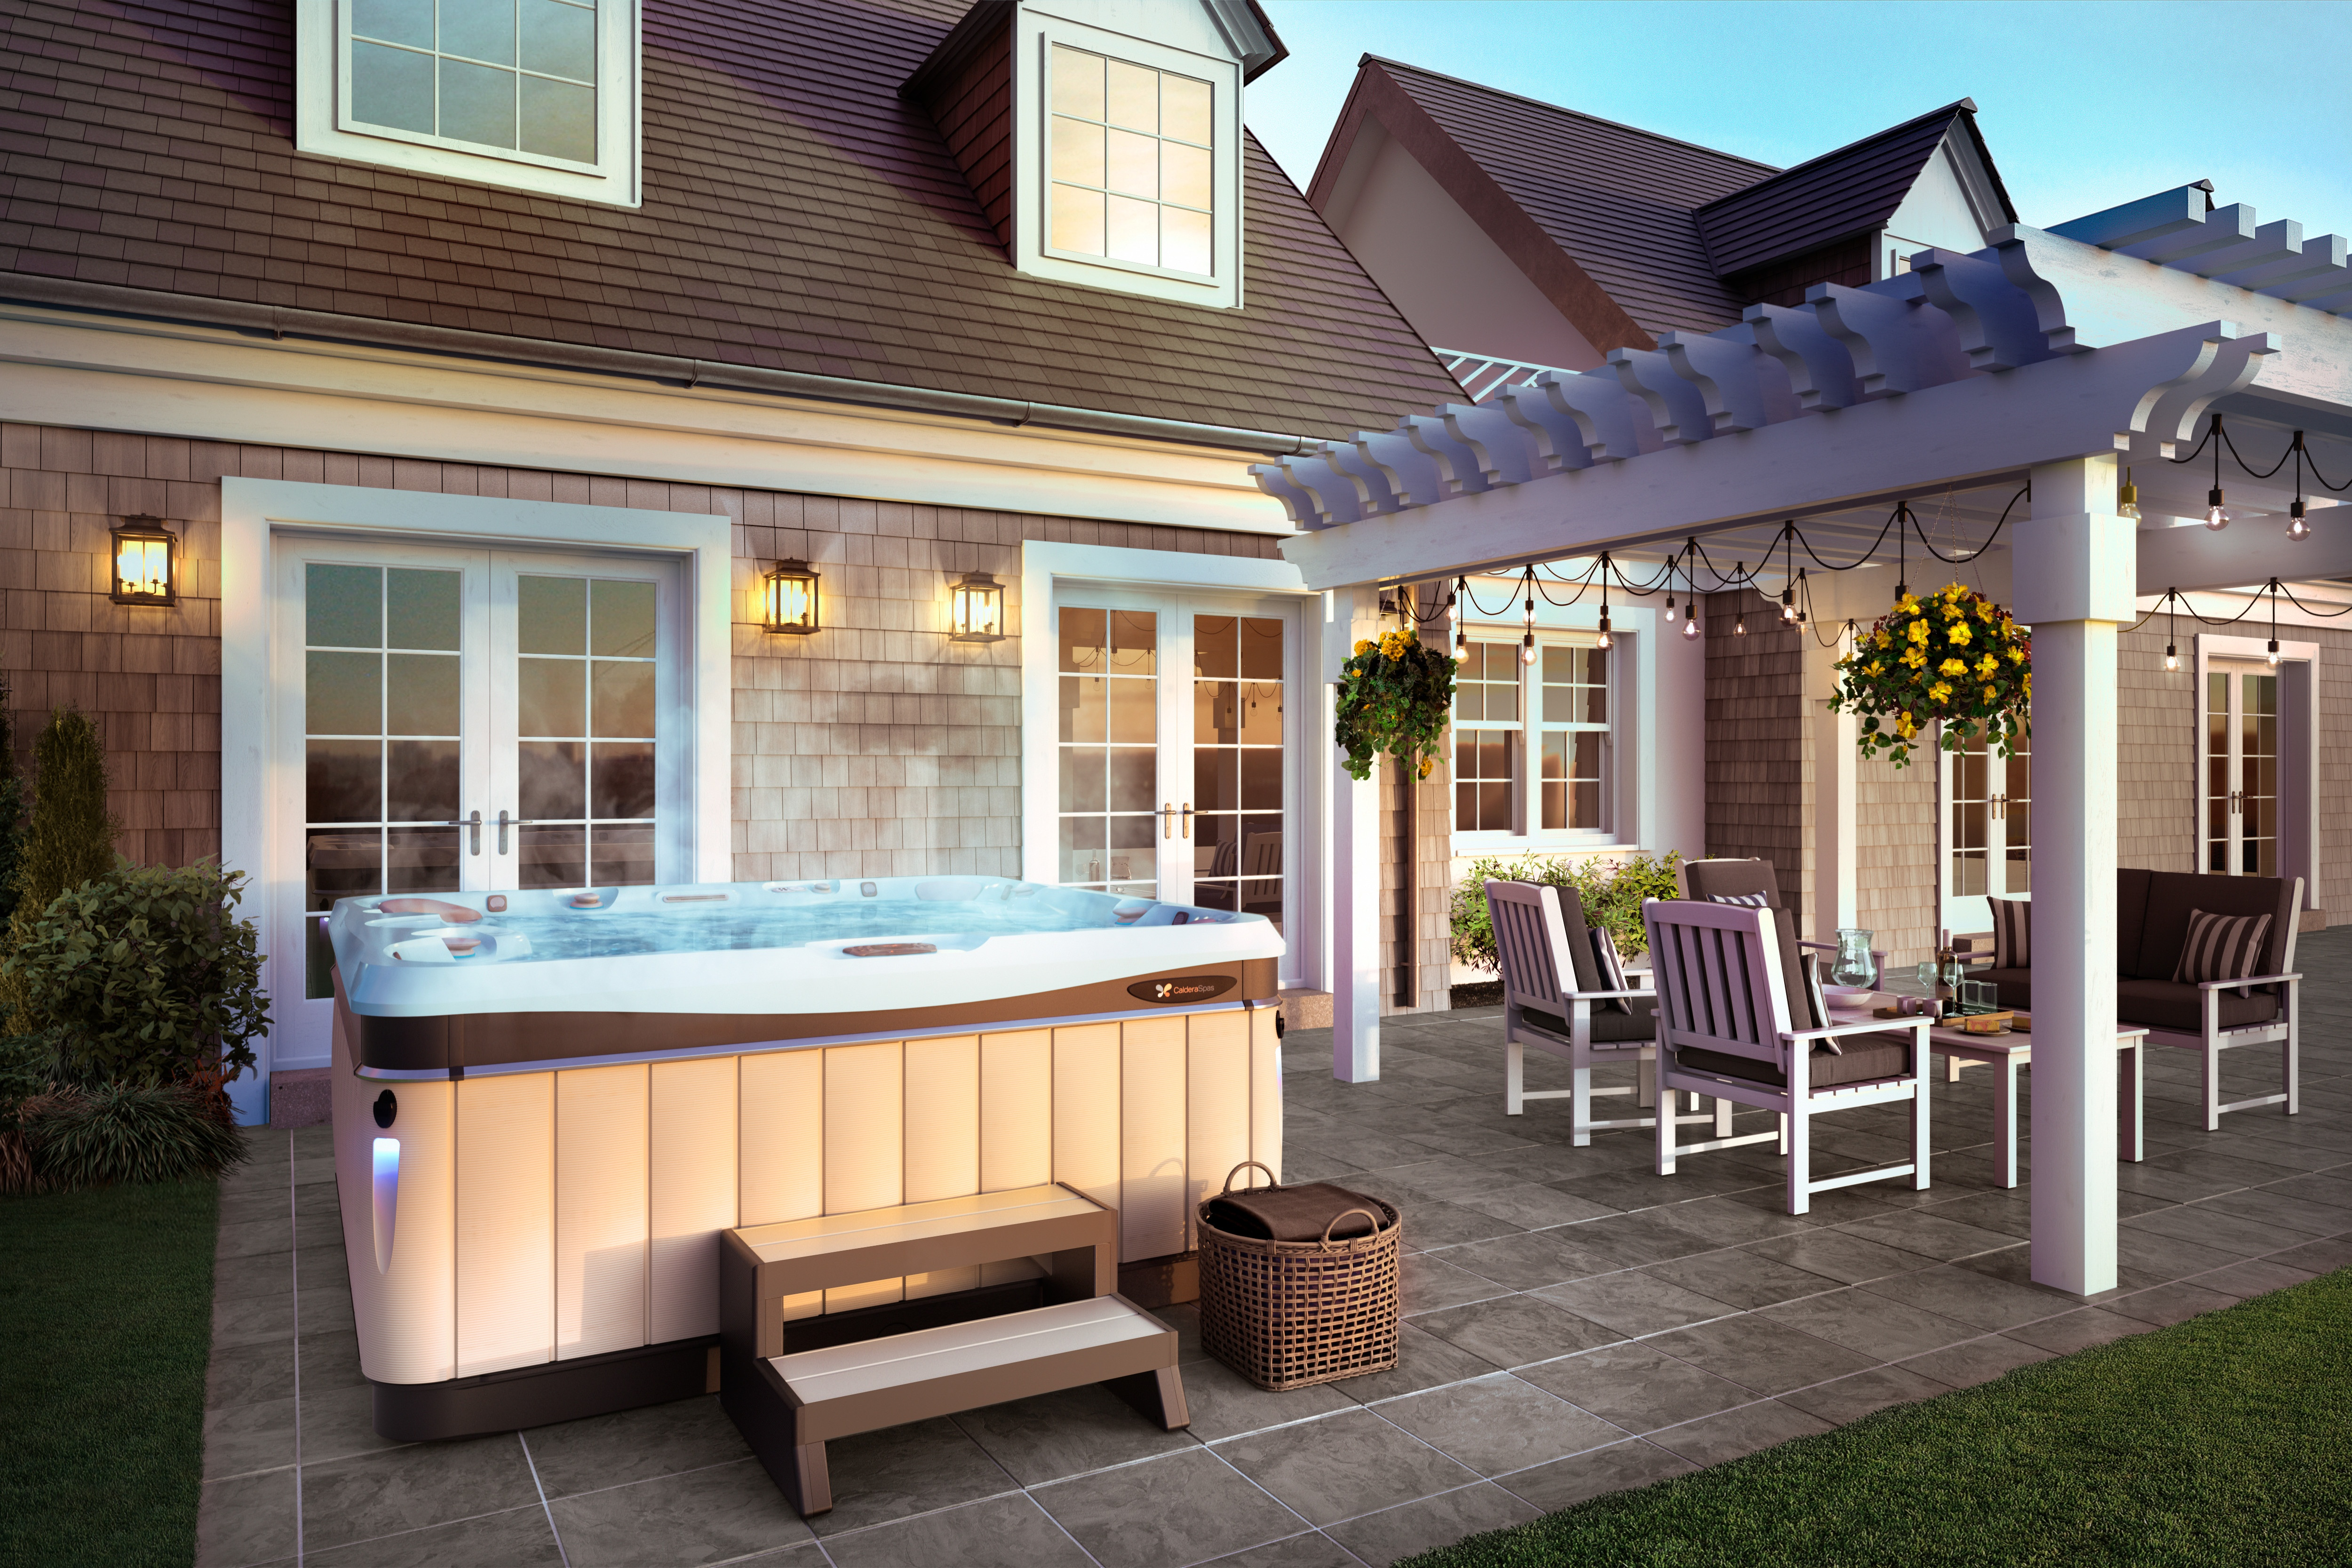 Owning a Hot Tub